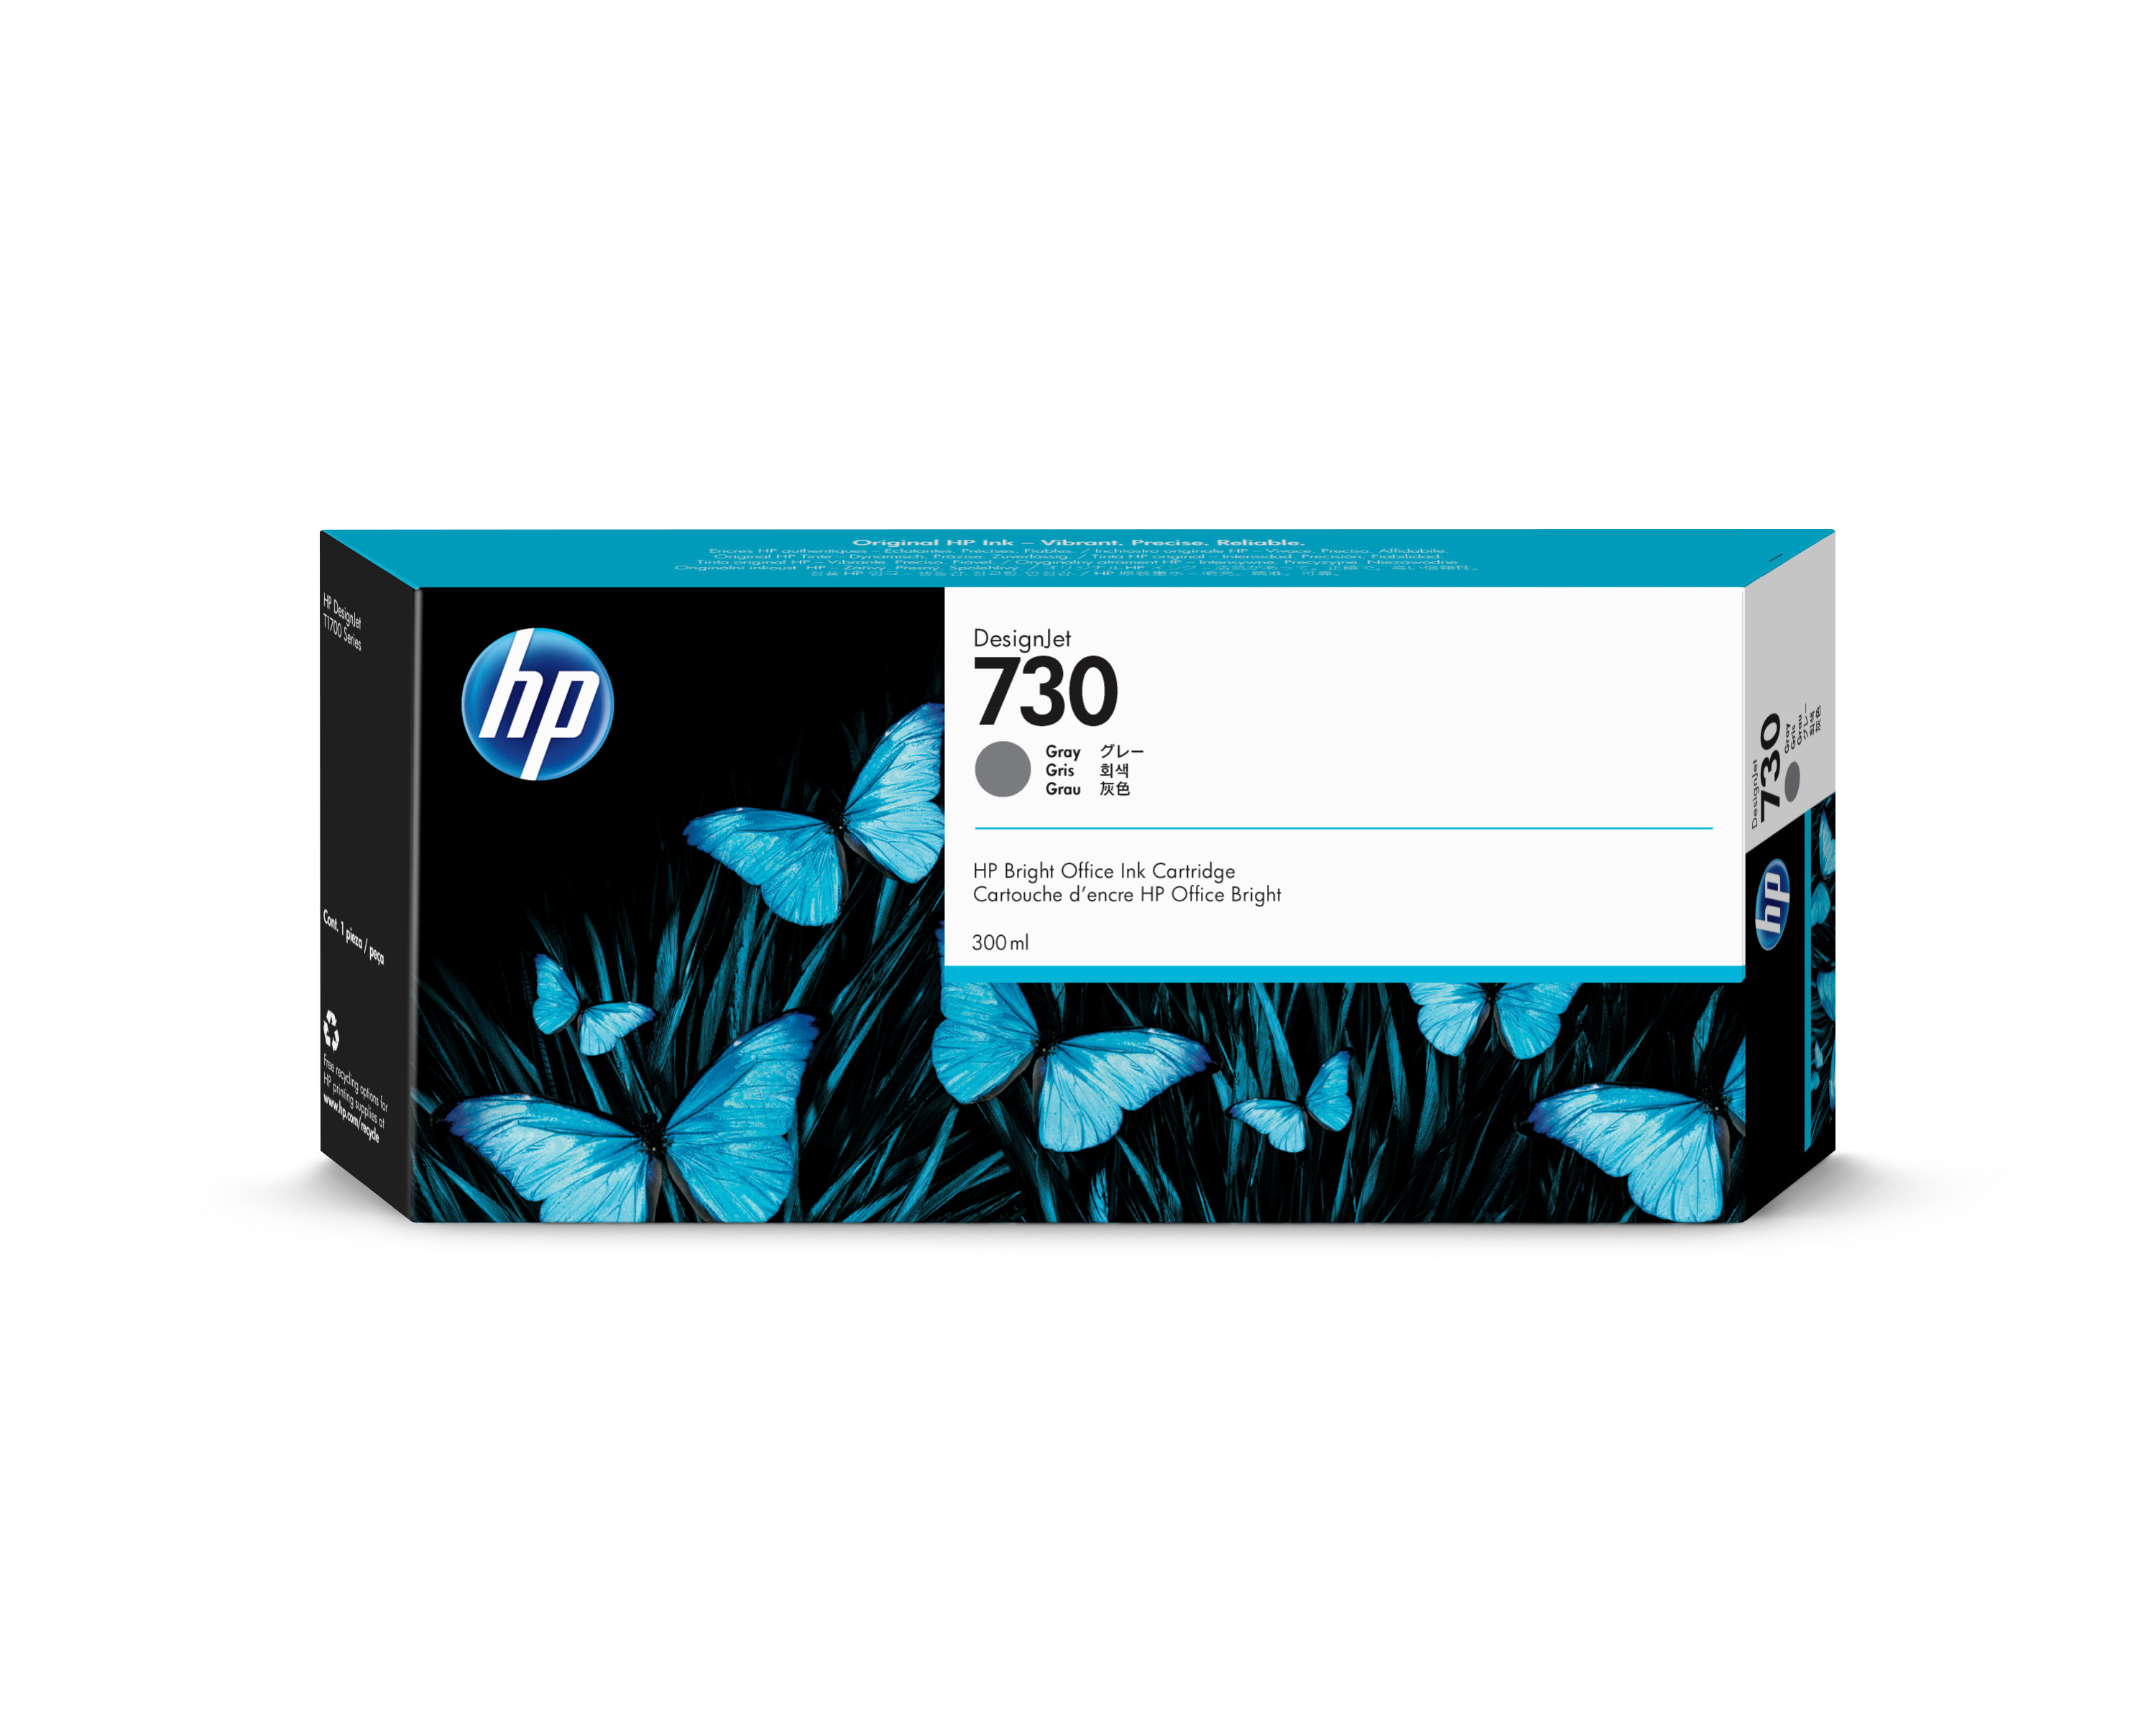 HP P2V72A Tinte gray